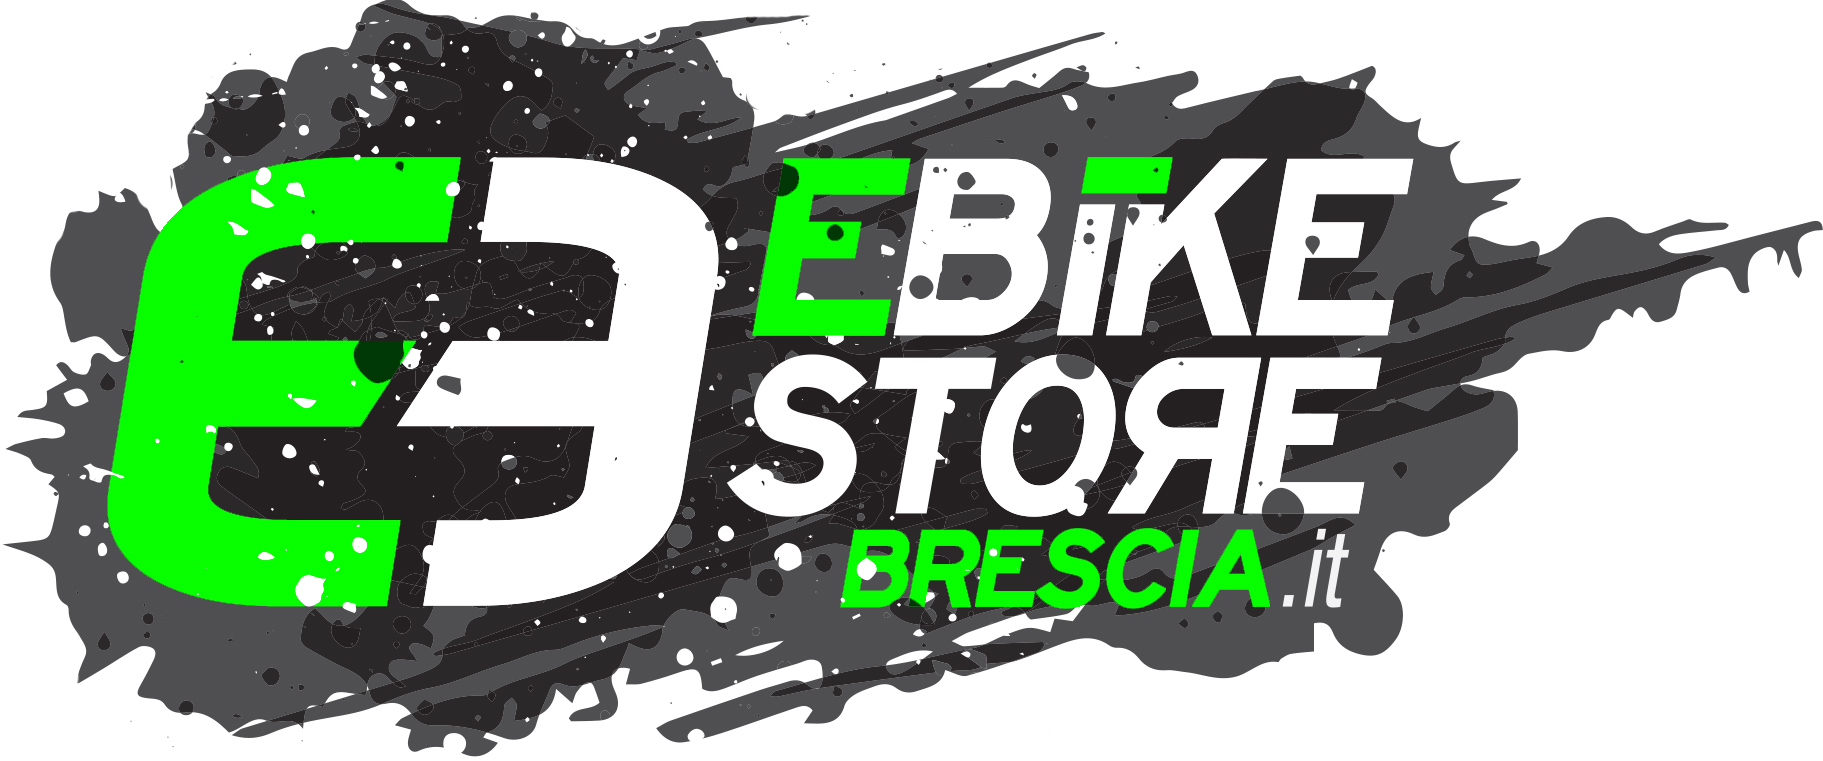 e bike store brescia roncadelle e bike store. Black Bedroom Furniture Sets. Home Design Ideas